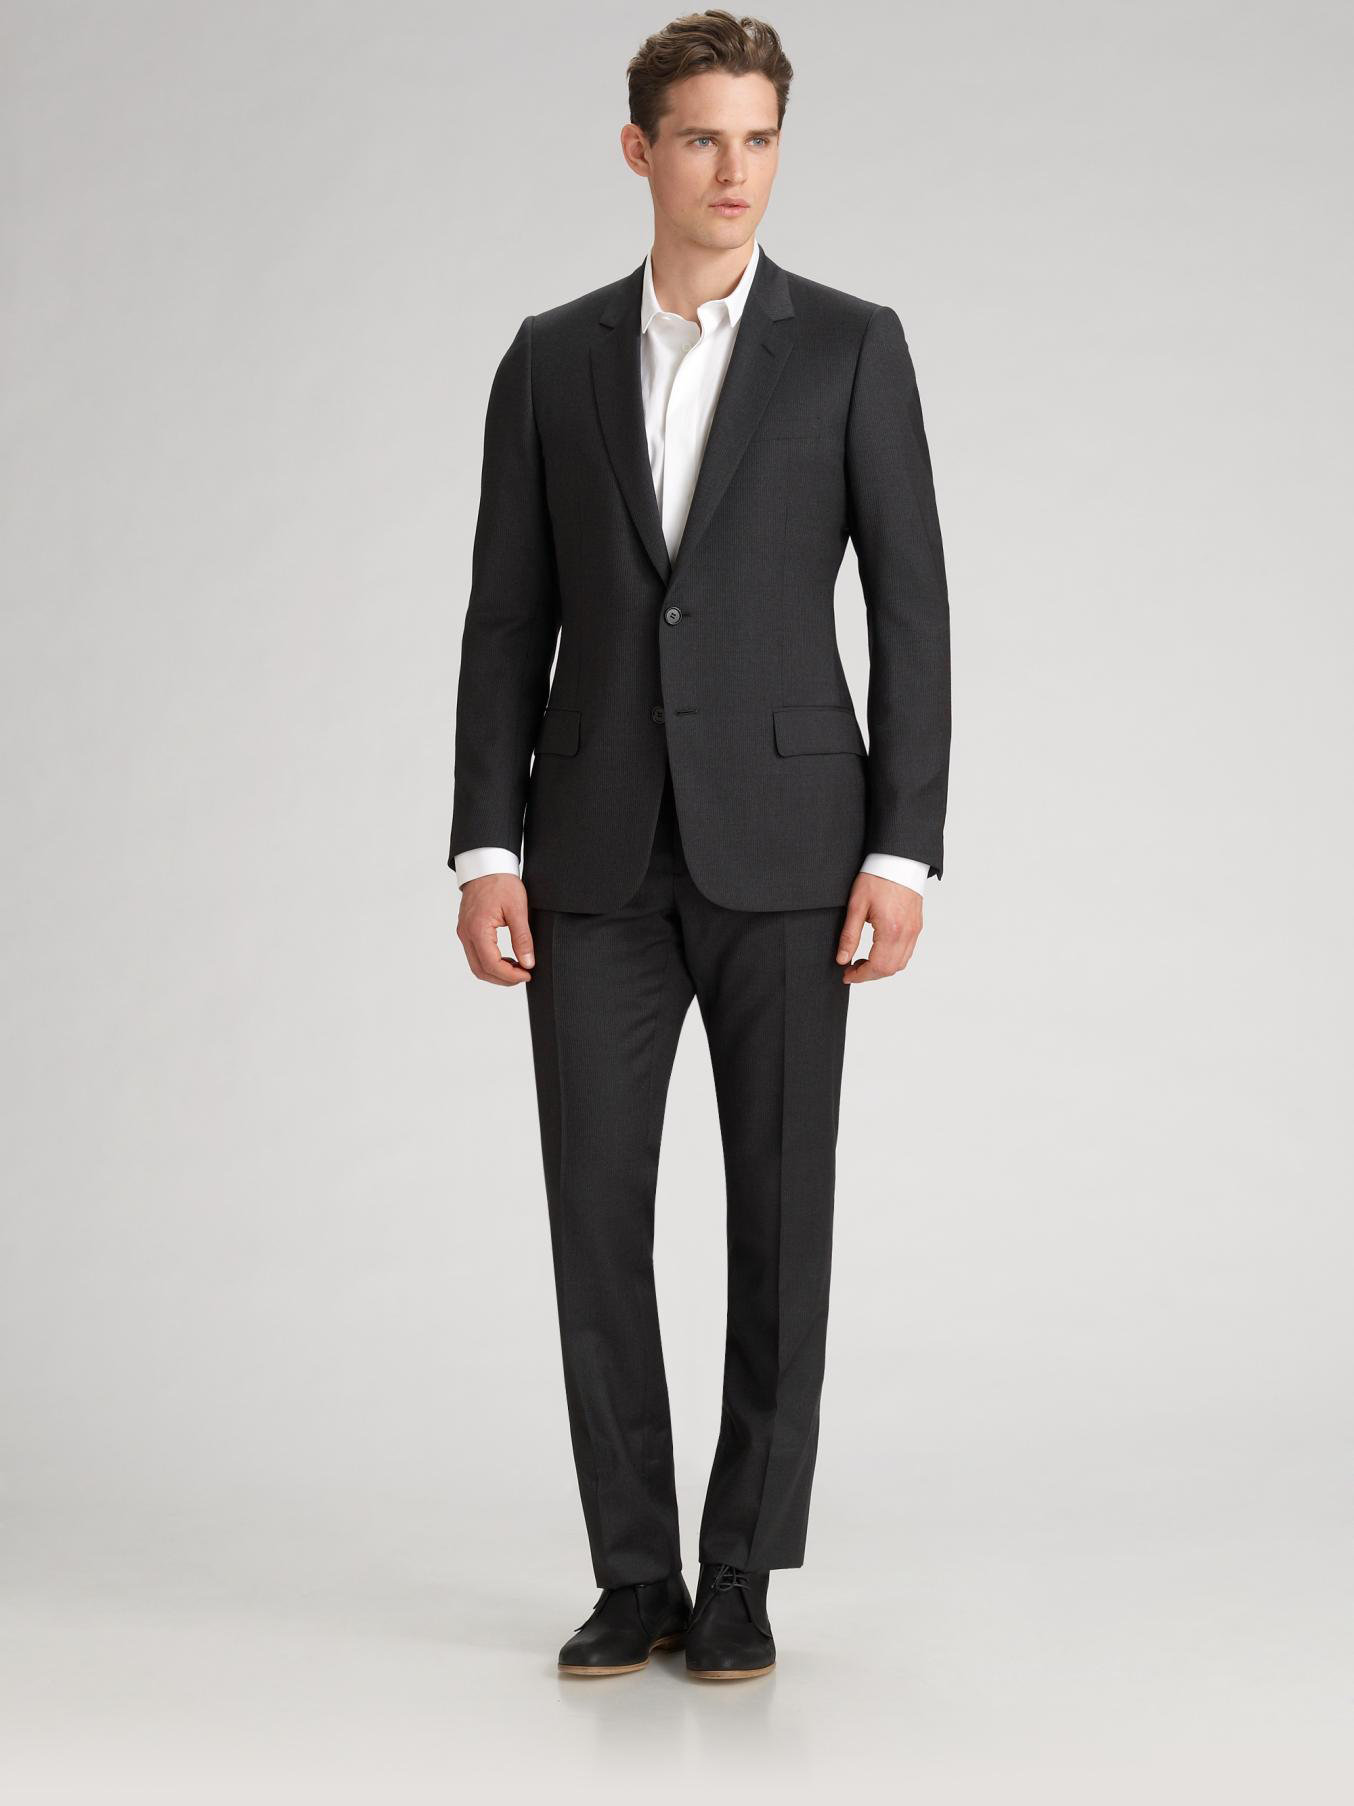 Dior Homme Twopiece Suit In Gray For Men Lyst